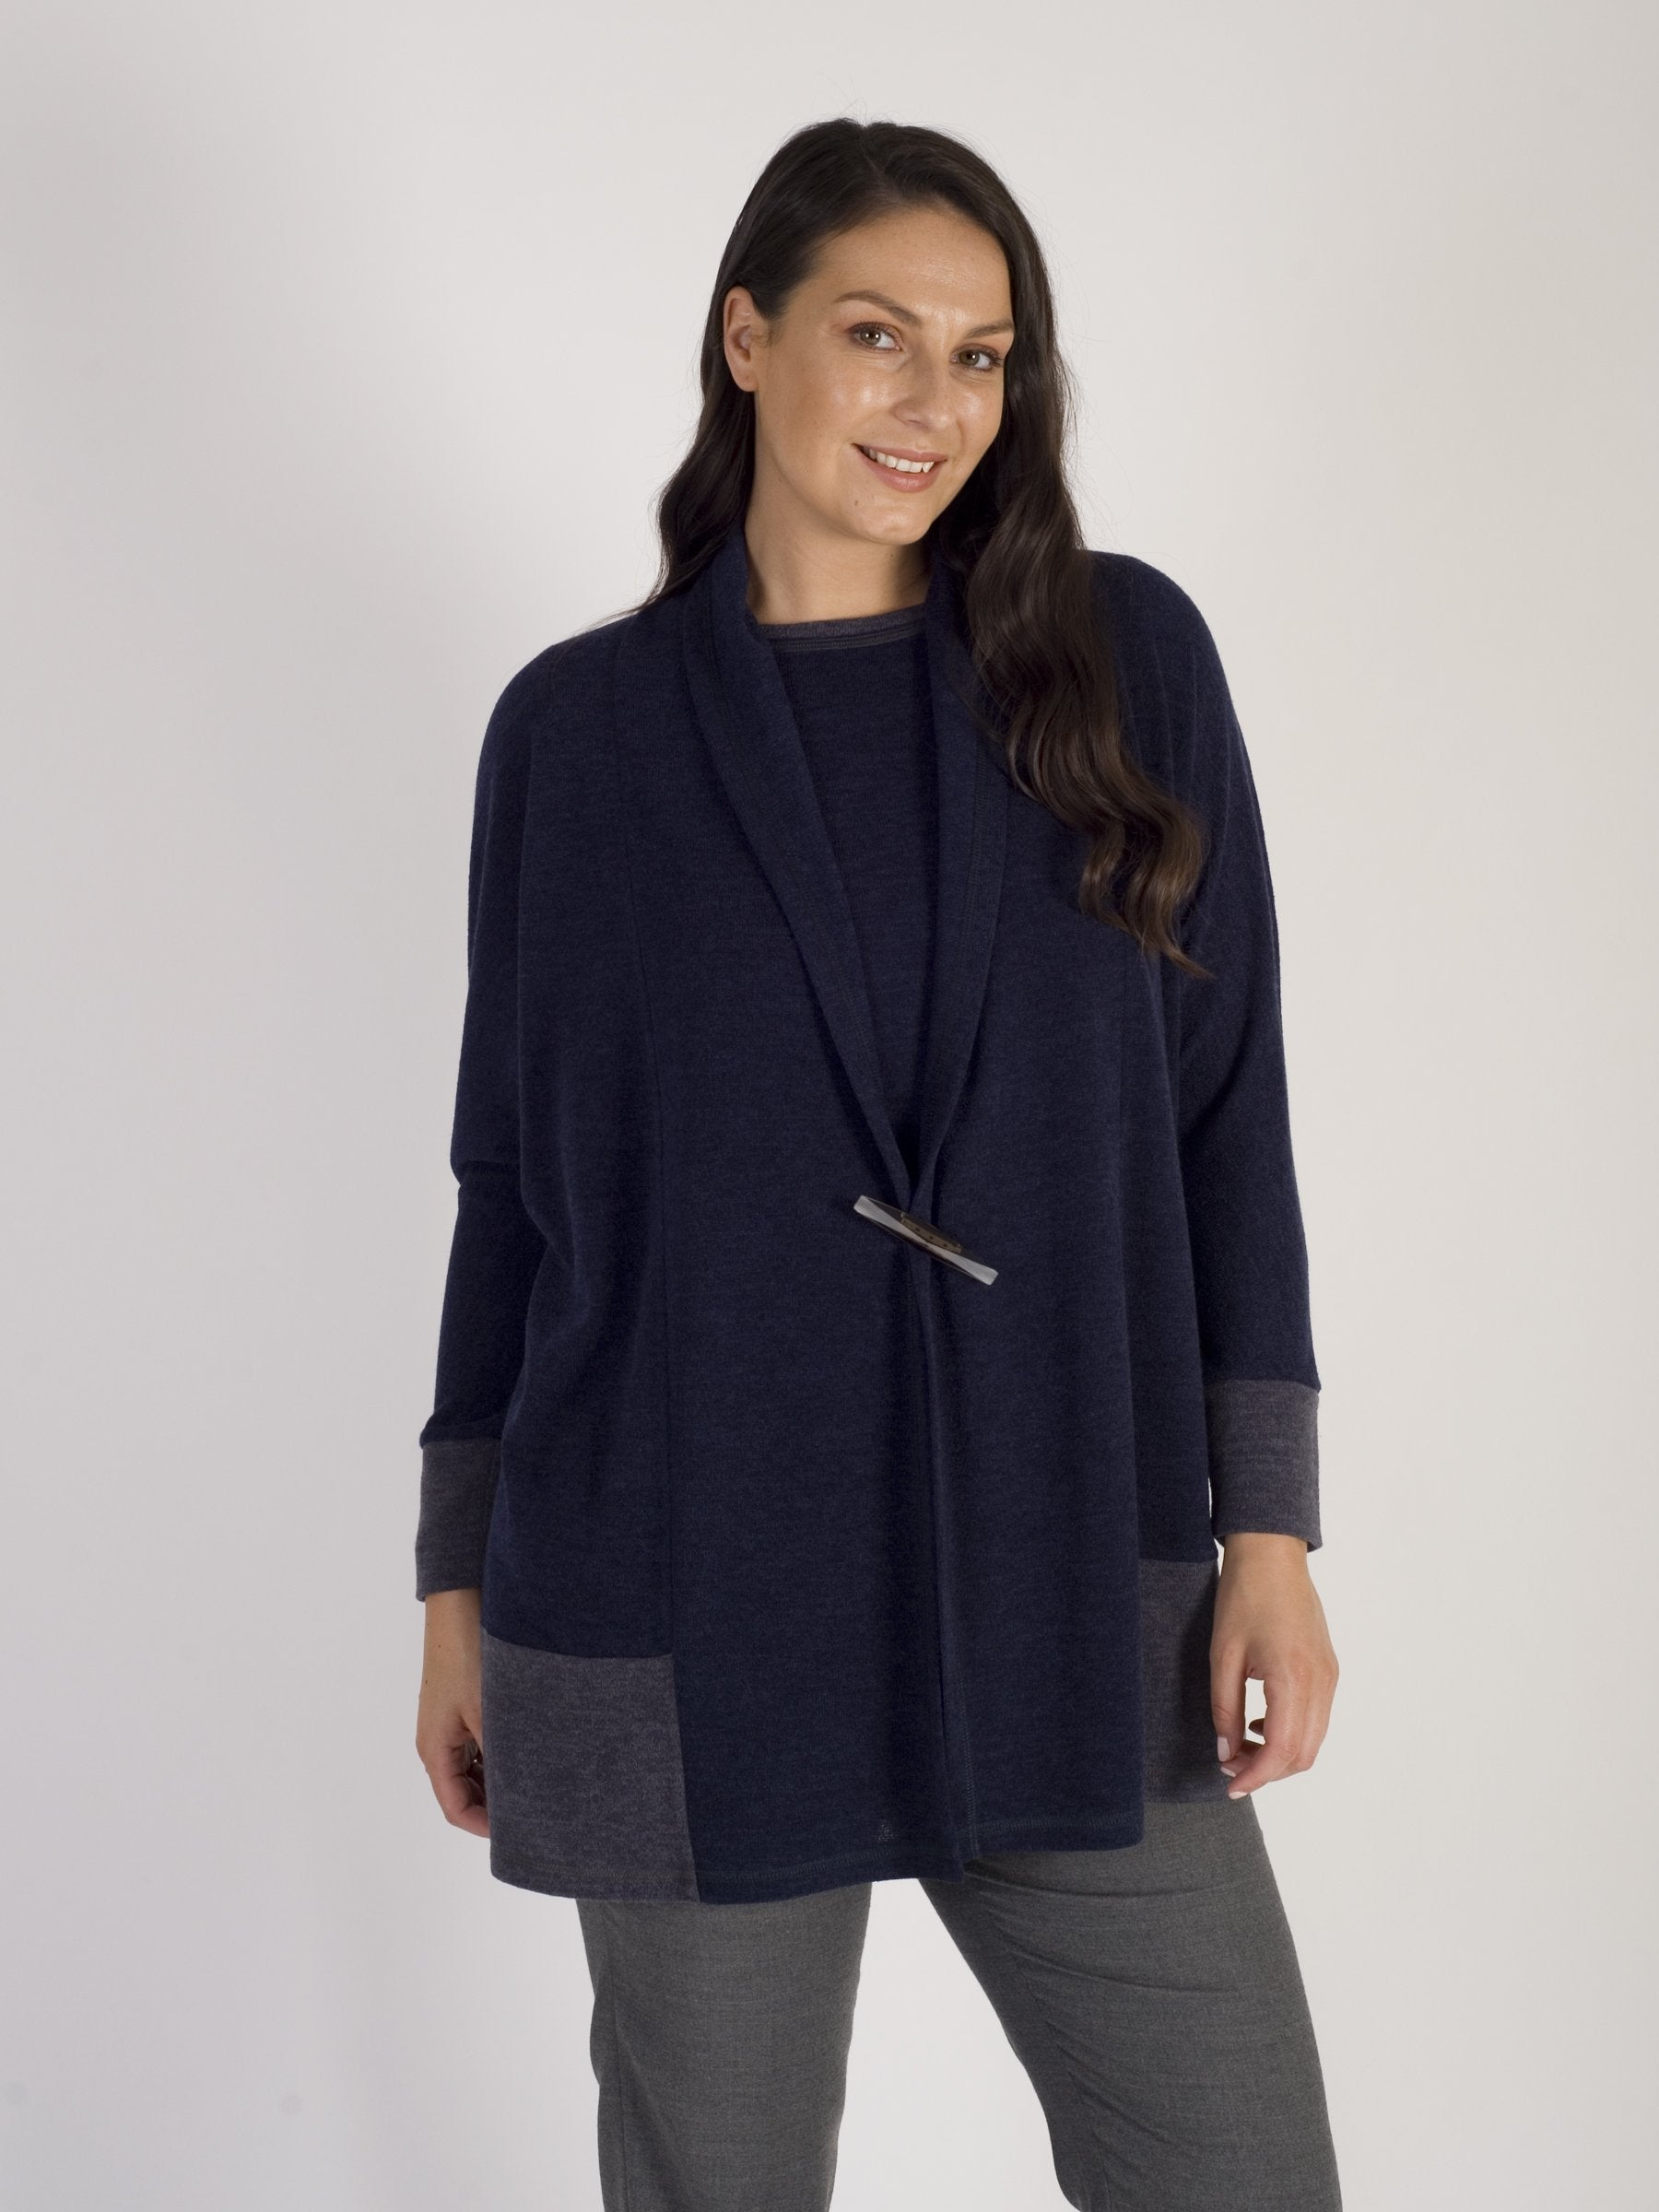 Calaluna Navy and Grey Colour Block Cardigan